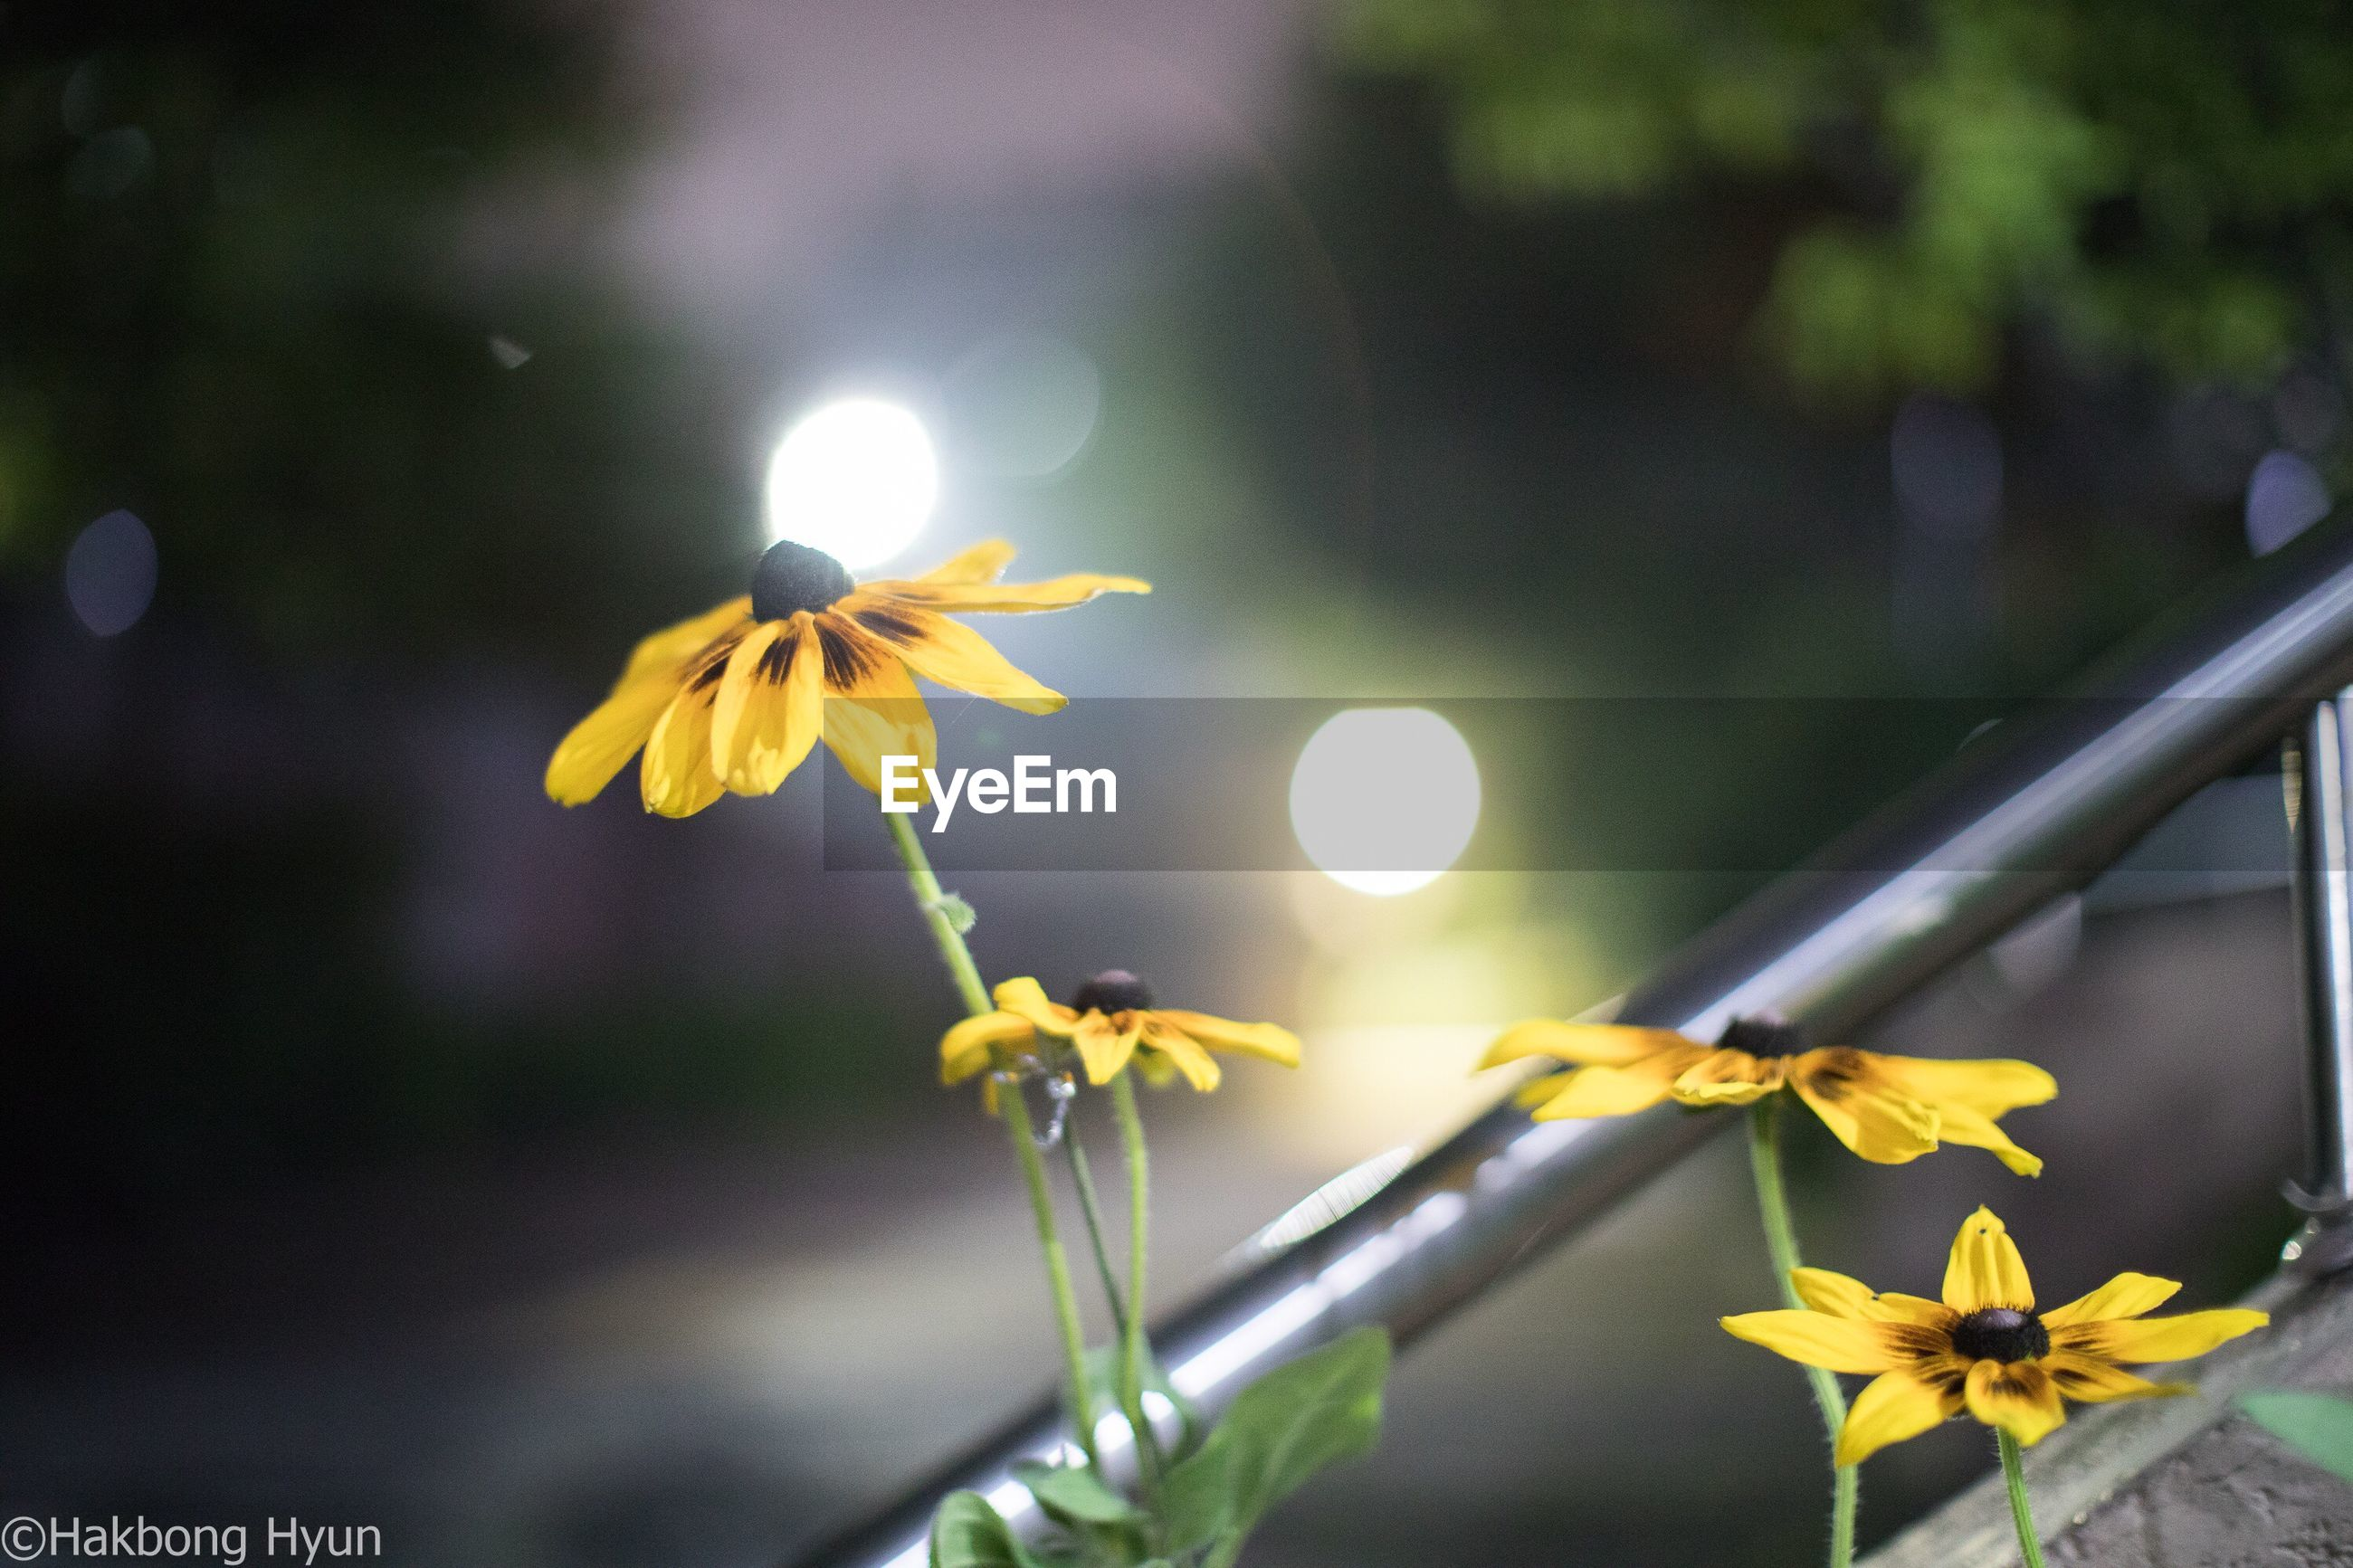 flower, growth, yellow, nature, petal, fragility, beauty in nature, plant, focus on foreground, freshness, no people, flower head, outdoors, day, close-up, sunlight, blooming